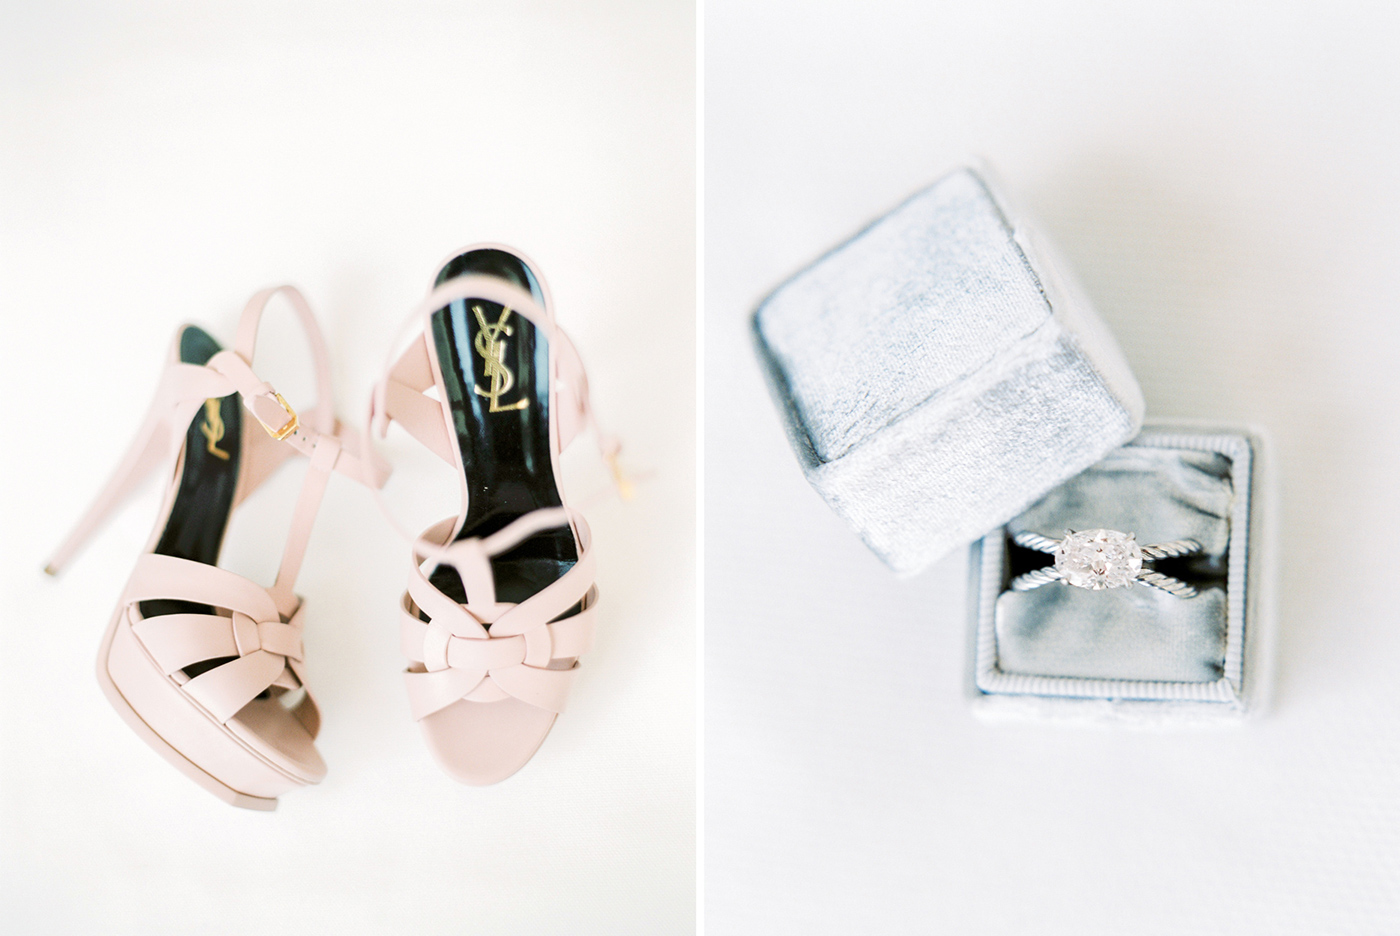 YSL Wedding Shoes & David Yurman engagement ring